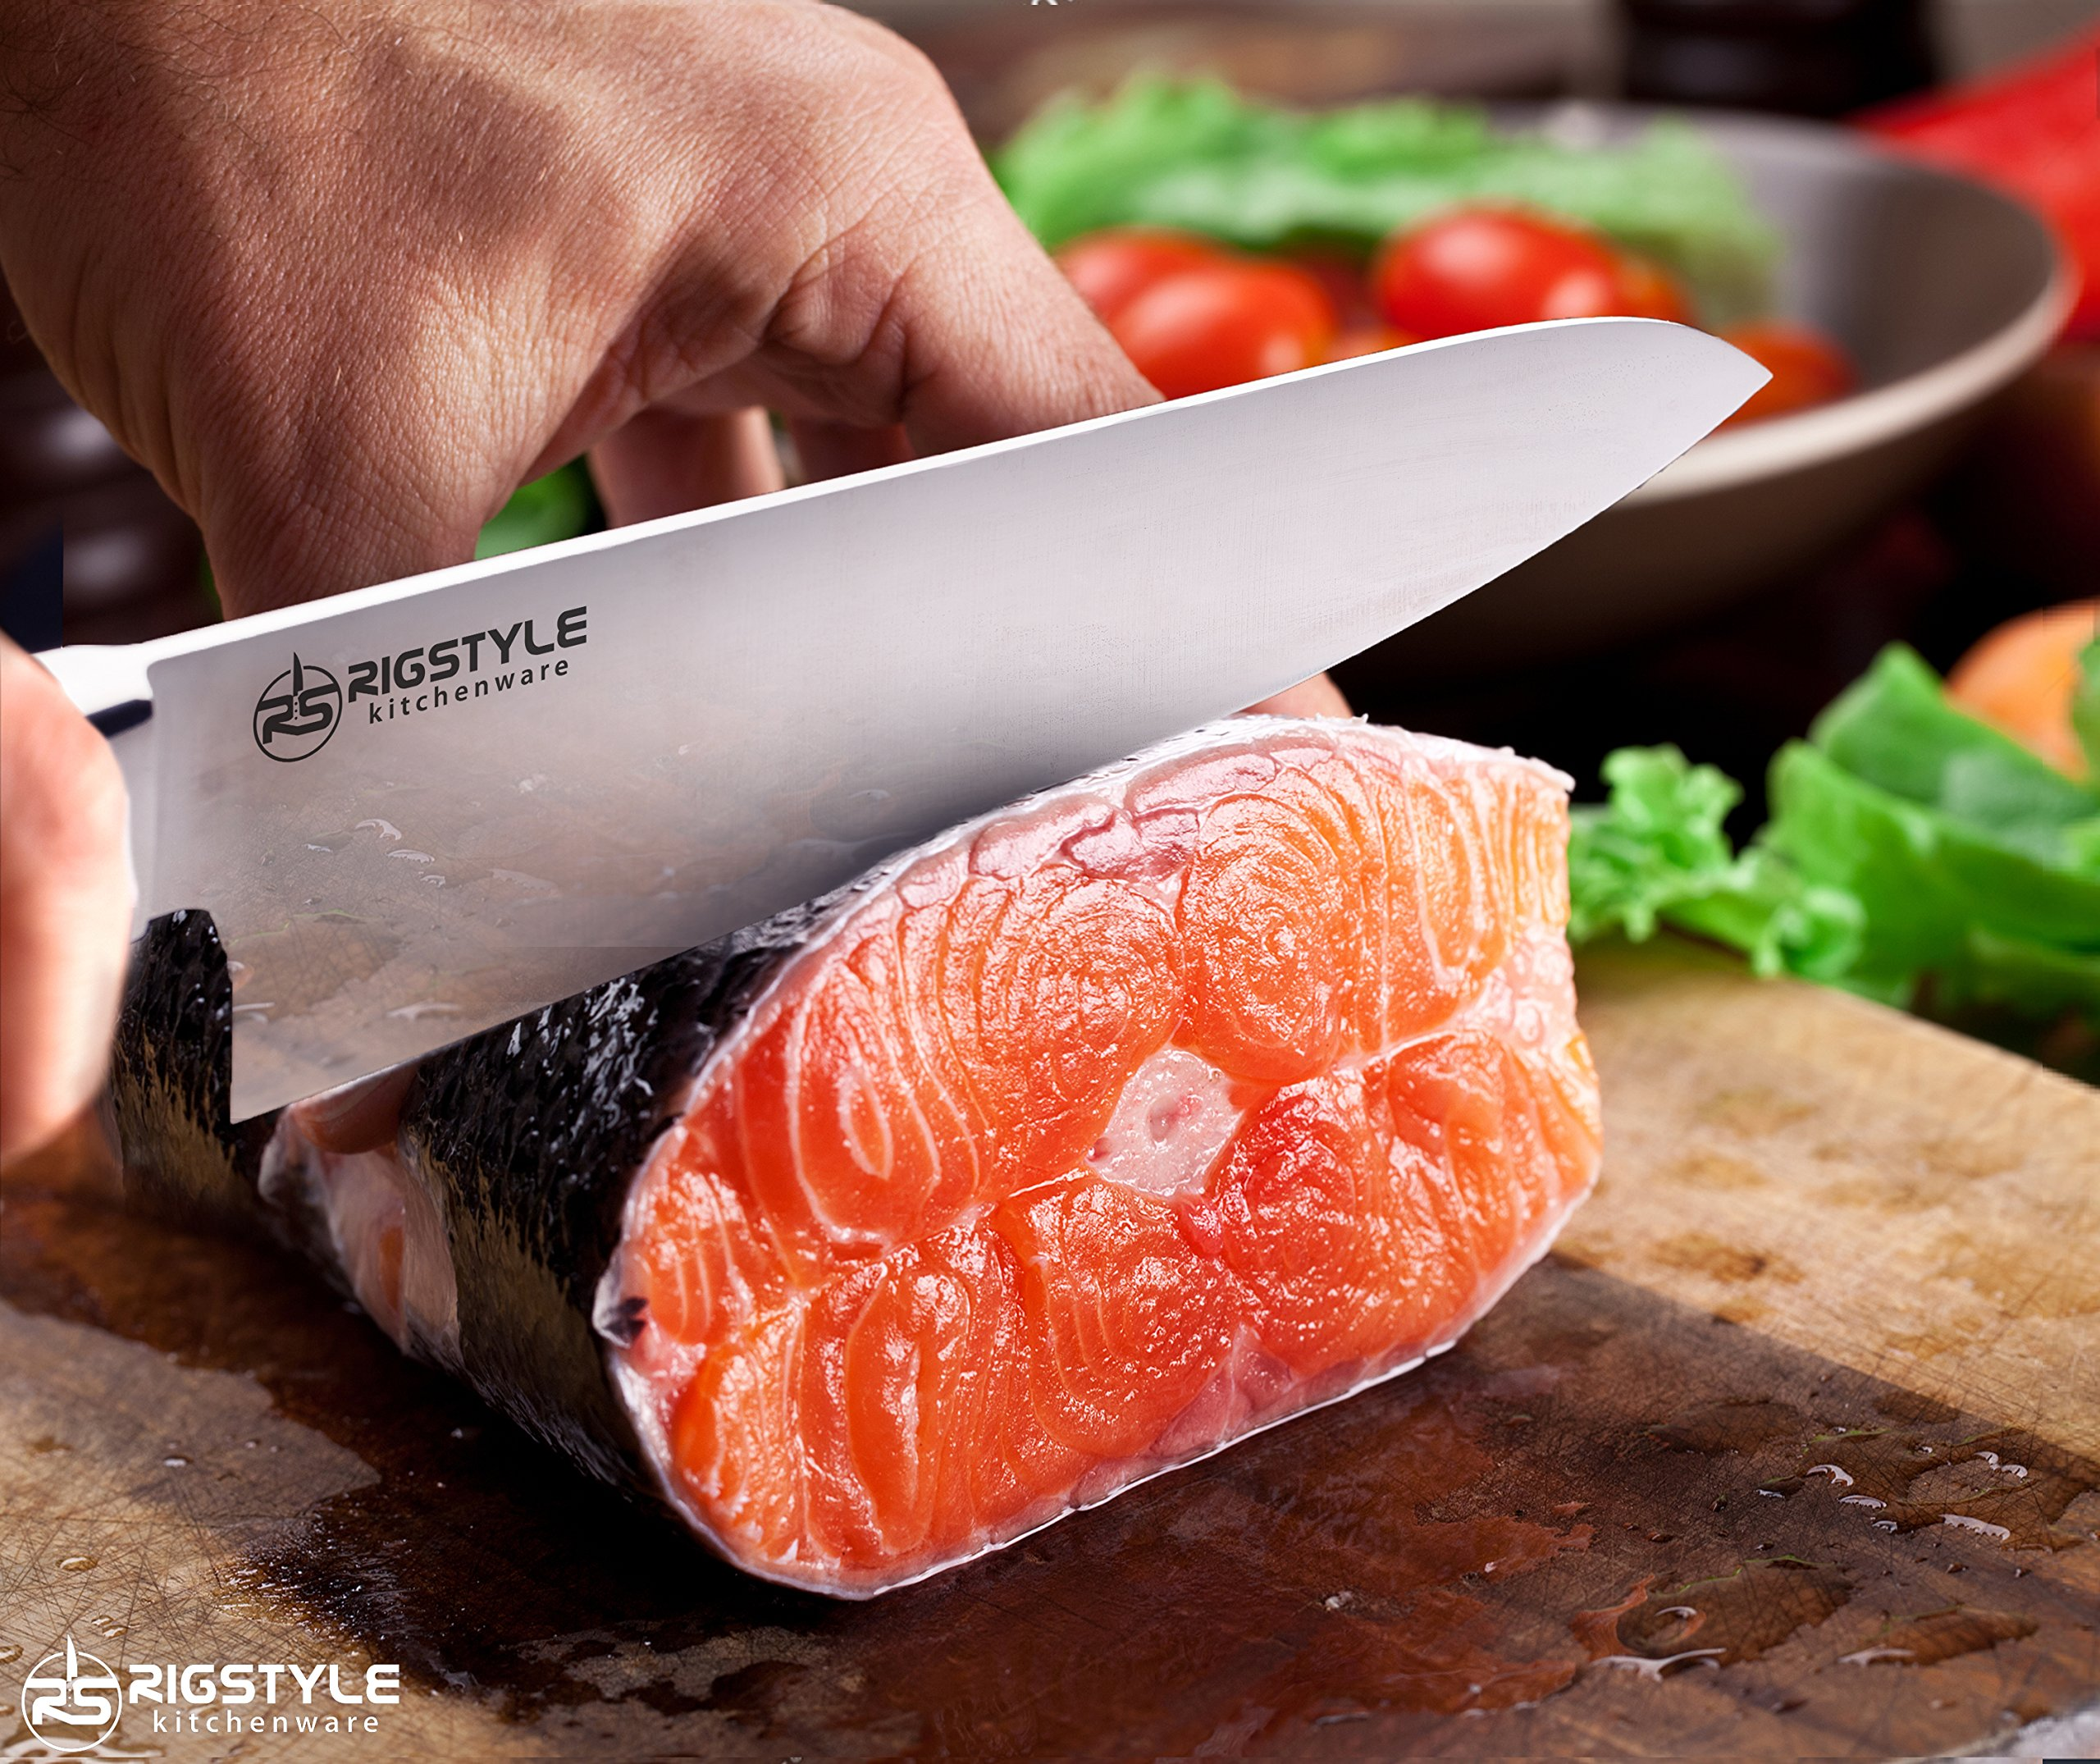 RIGSTYLE German Chef Knife 8 inch, High Carbon Stainless Steel, Sharp Blade with Ergonomic Handle for Professional Restaurants & Home Kitchens, Meat, Fish, Chicken & Vegetables Chopper, with Gift Box by RIGSTYLE (Image #6)